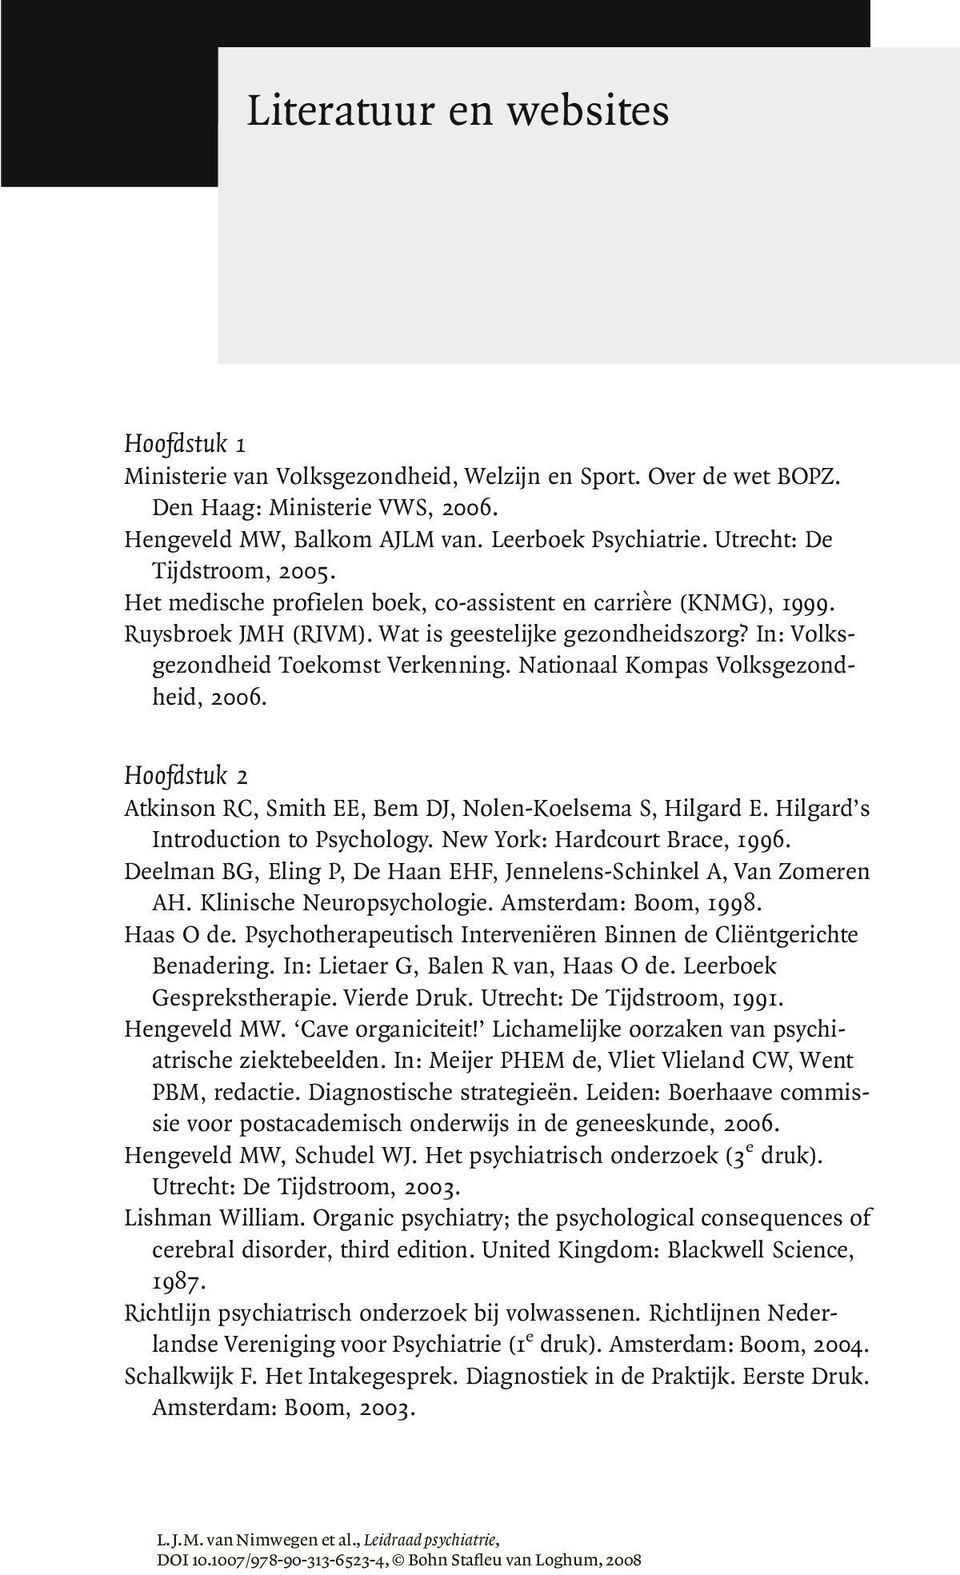 Nationaal Kompas Volksgezondheid, 2006. Hoofdstuk 2 Atkinson RC, Smith EE, Bem DJ, Nolen-Koelsema S, Hilgard E. Hilgard s Introduction to Psychology. New York: Hardcourt Brace, 1996.